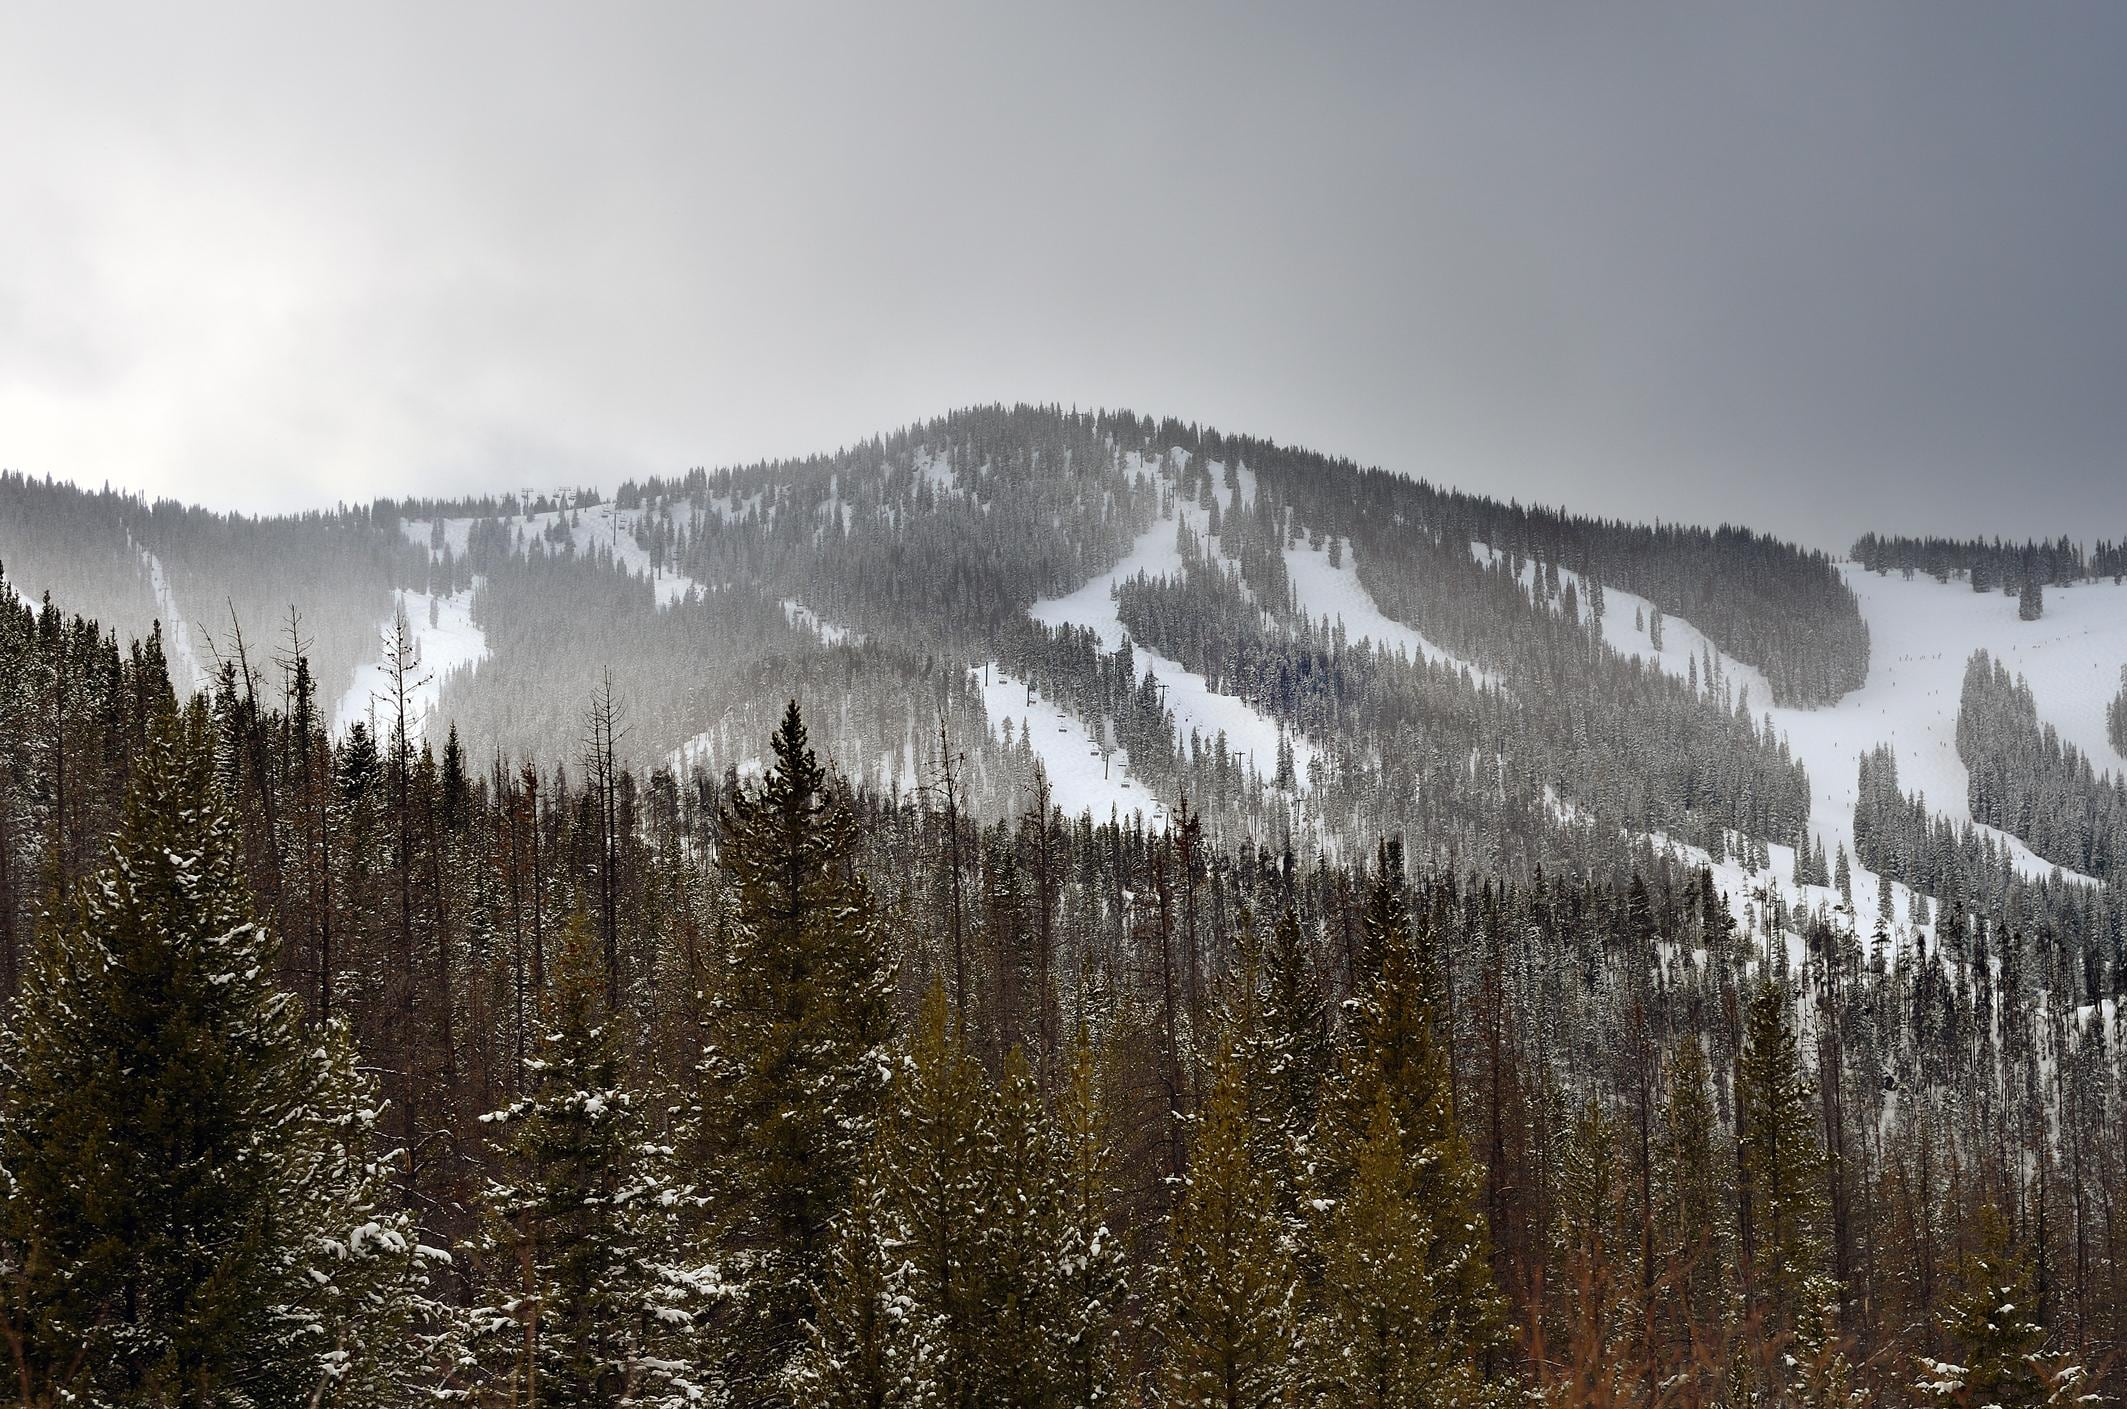 Discover some of the country's best skiing at Winter Park Resort within a 15-minute drive.